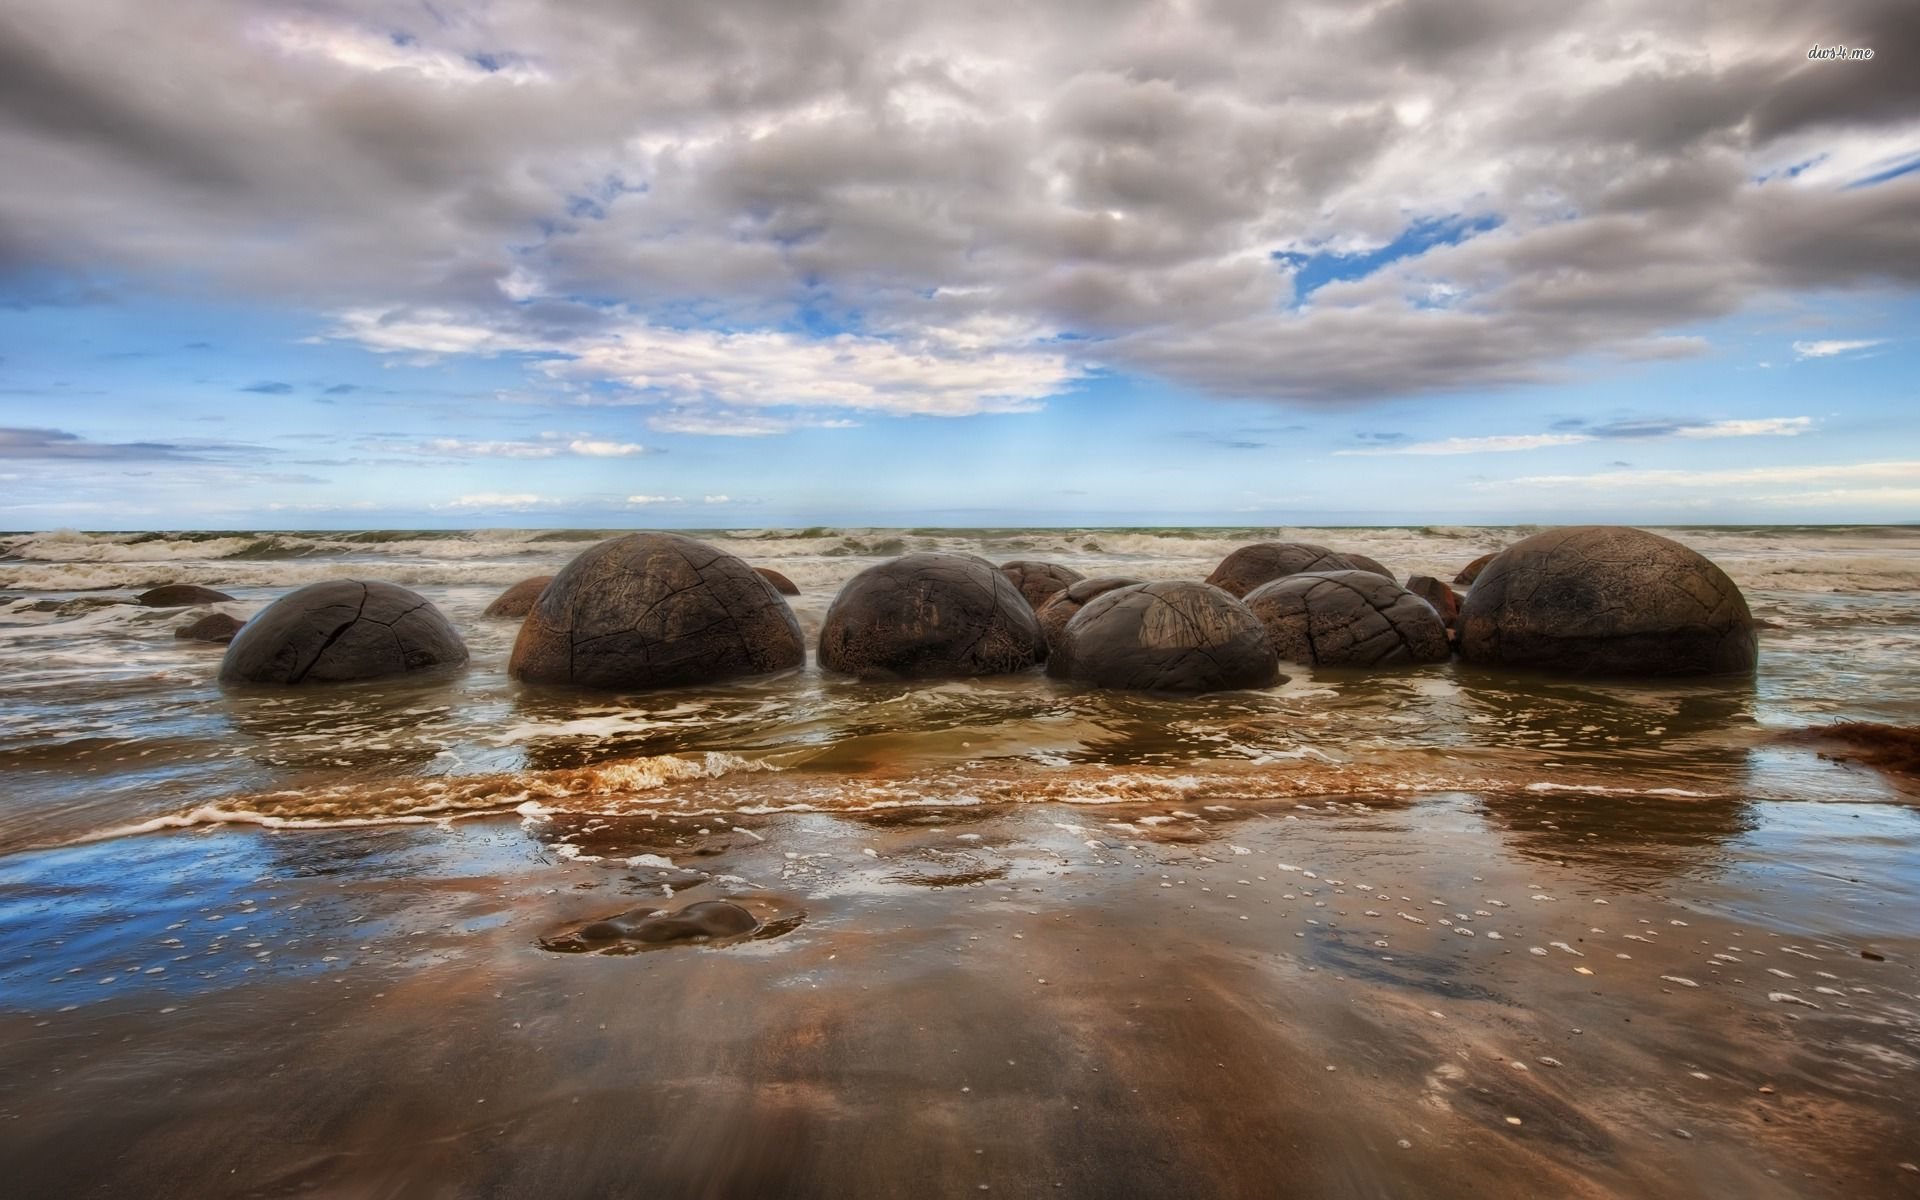 25611-moeraki-boulders-new-zealand-1920x1200-beach-wallpaper